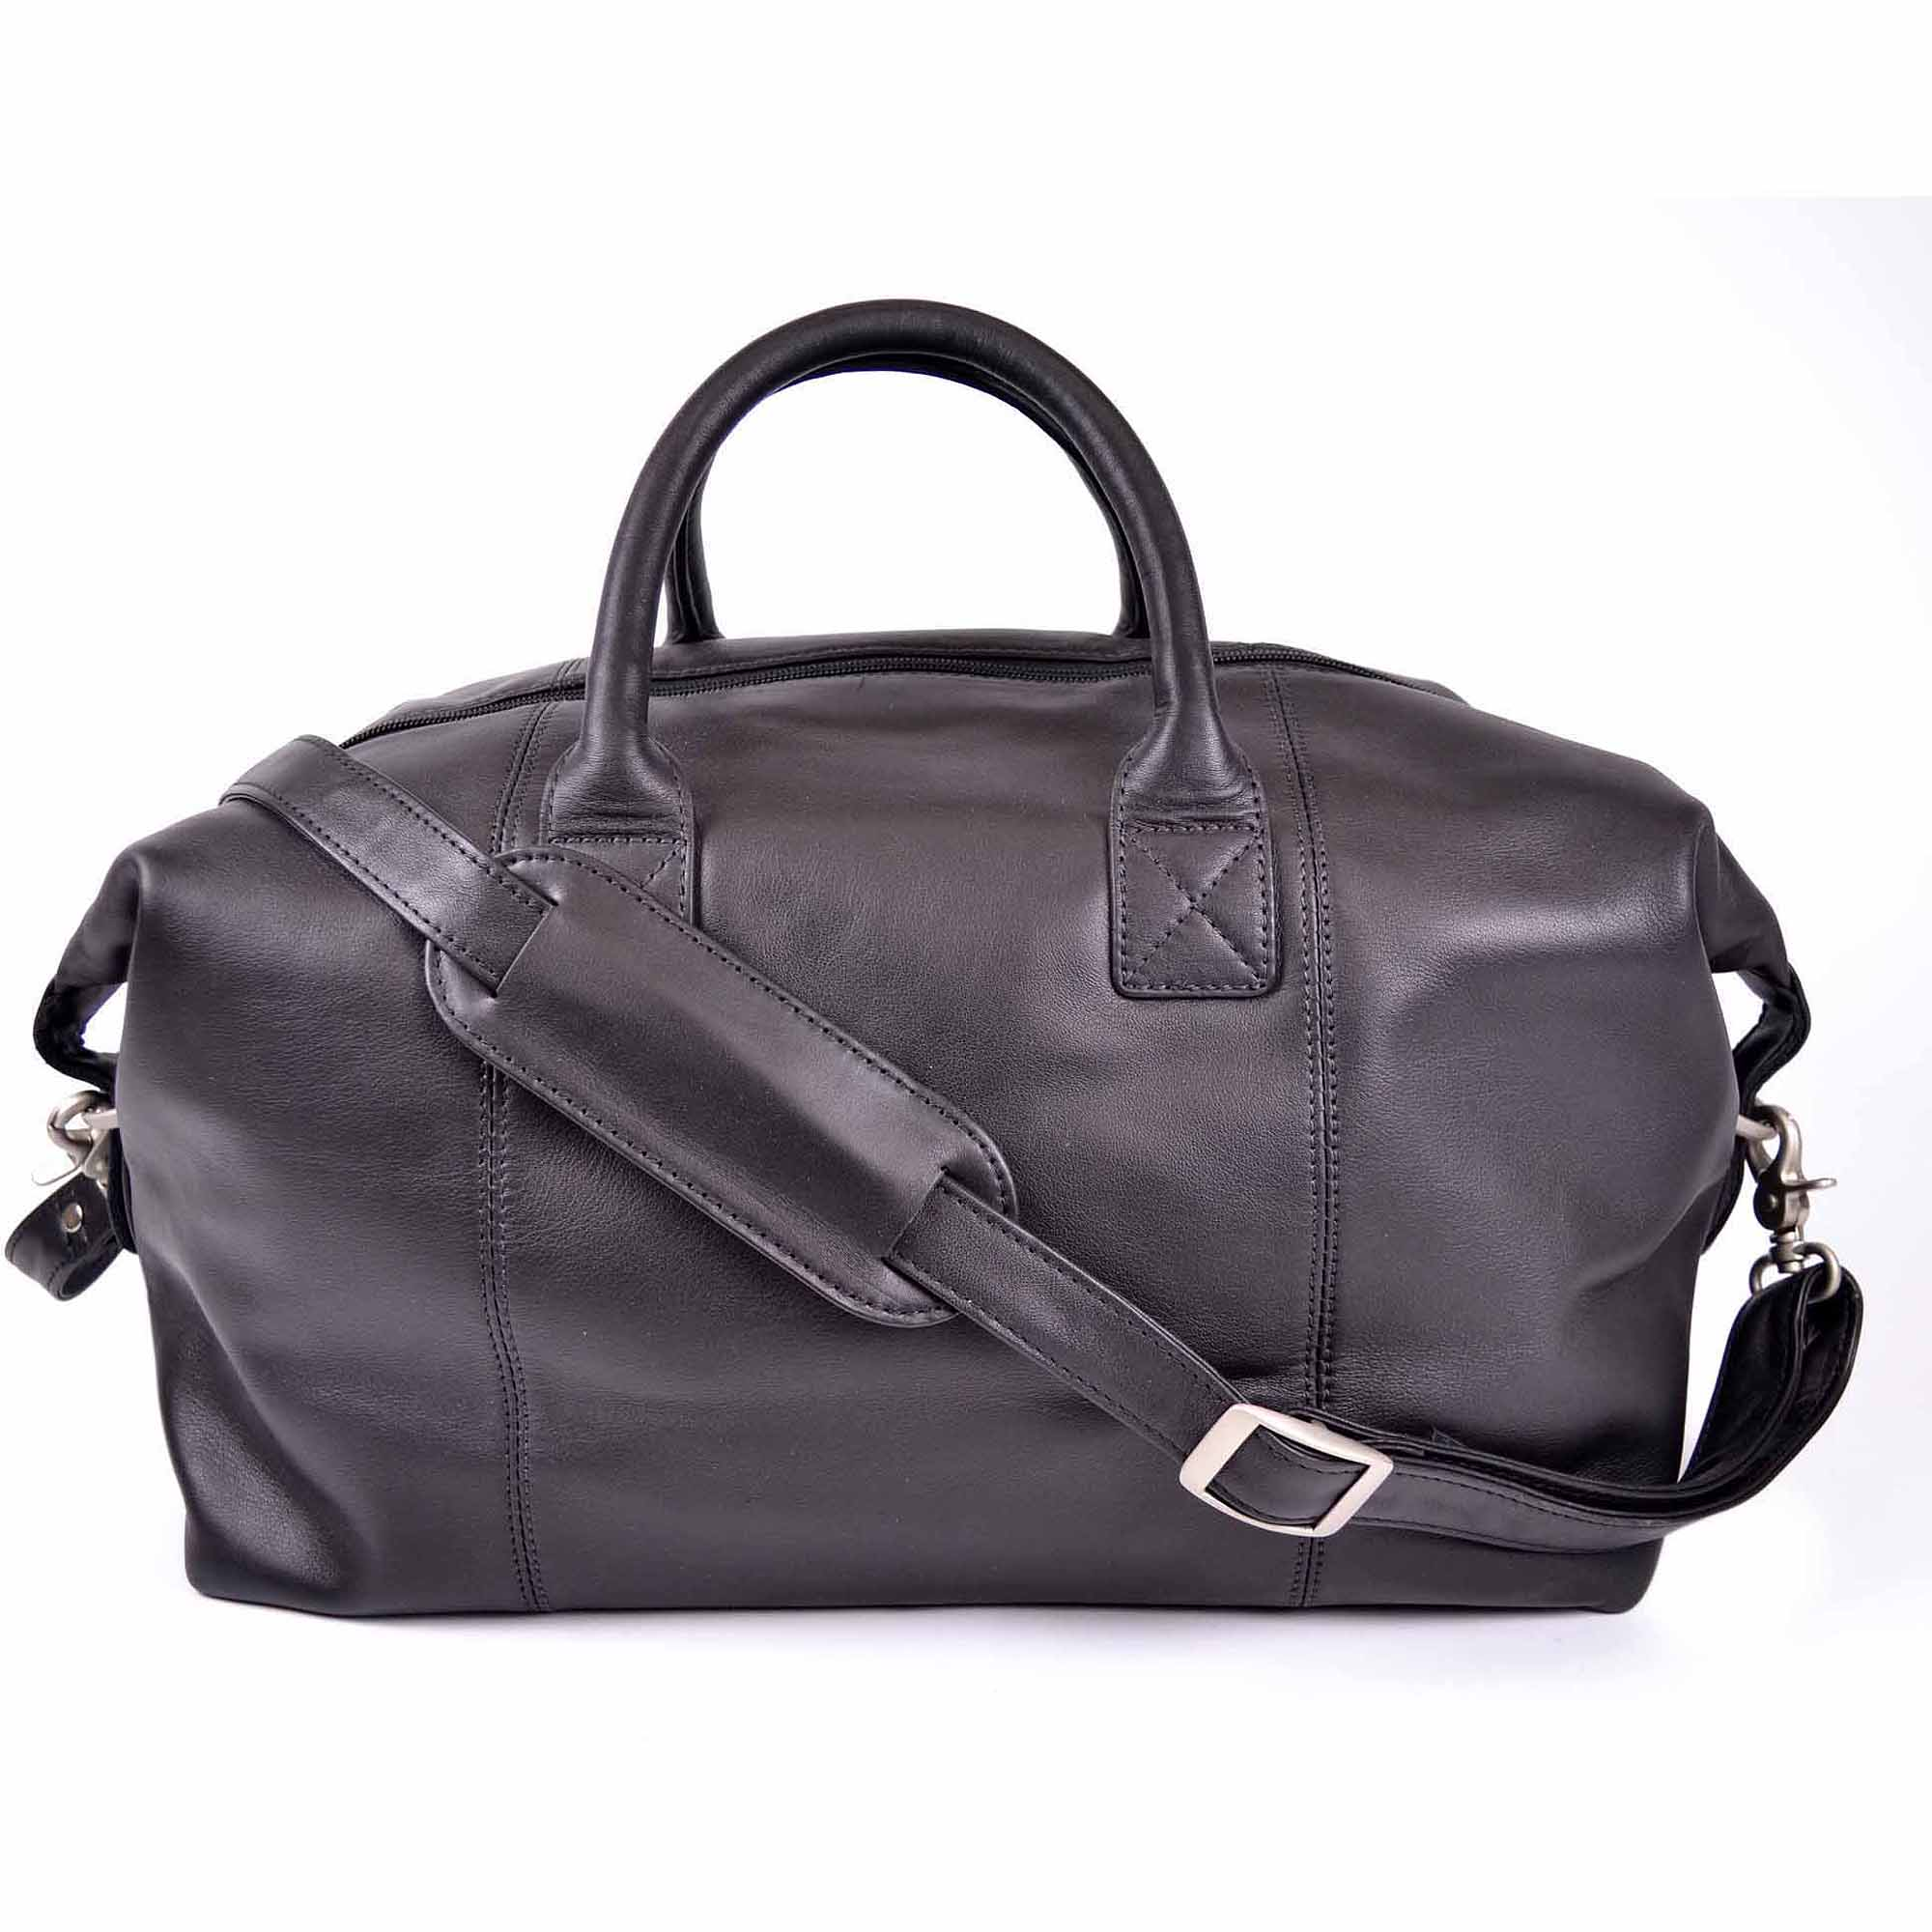 Royce Leather Travel Duffel Overnight Bag in Genuine Leather by Royce Leather